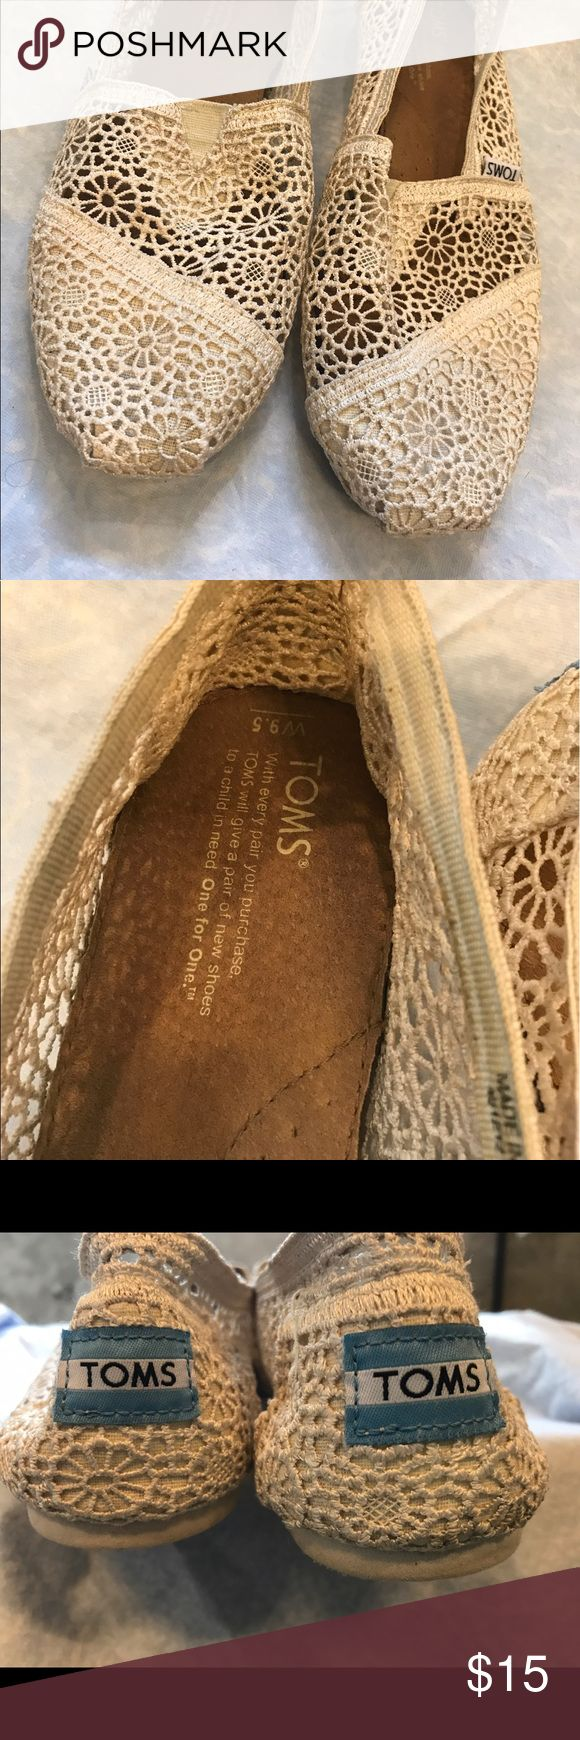 Ivory Lace Toms. Size 9.5/10 Women. Gently Worn Ivory Lace Toms. Worn in a wedding once. Only sign of wear is on the bottom. Match everything. Very comfortable. 9.5 Women. Fit size 10. TOMS Shoes Flats & Loafers